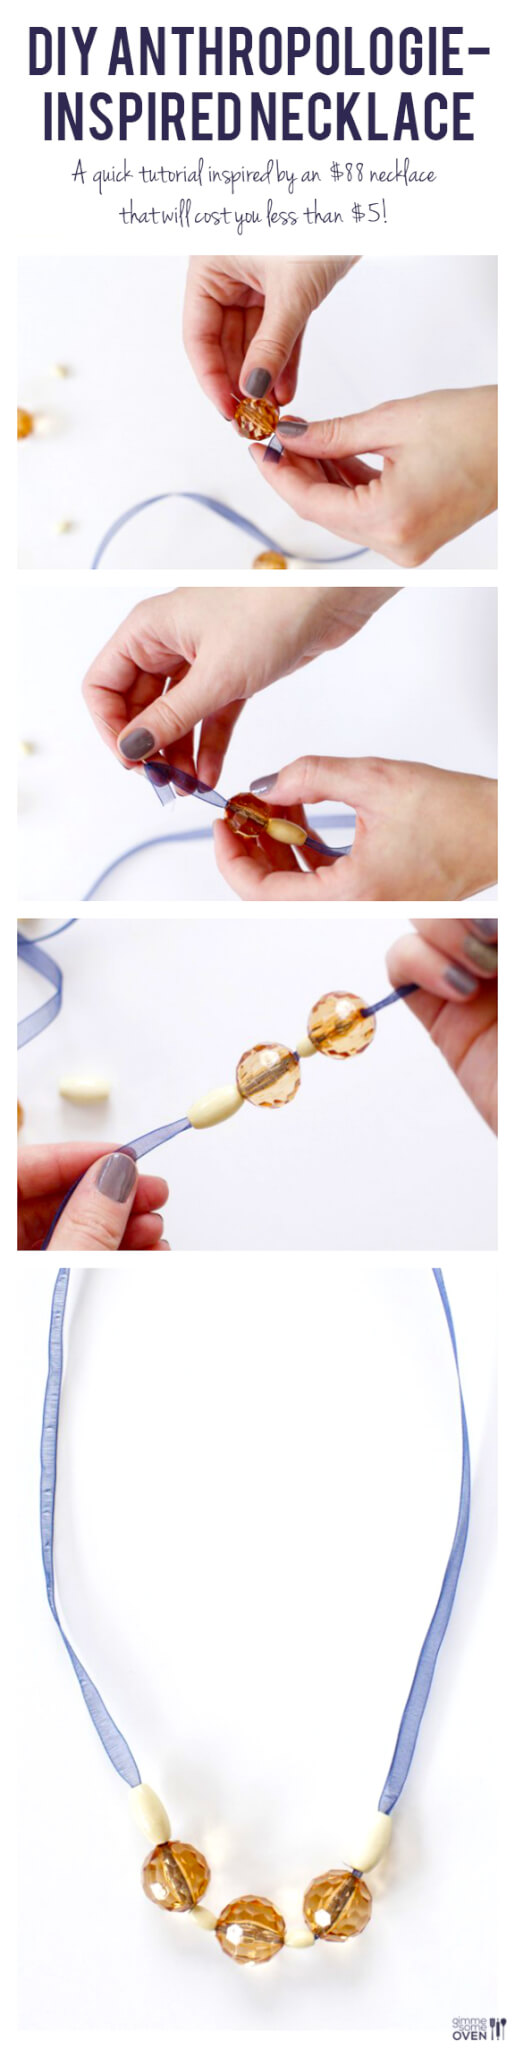 DIY Anthropologie Inspired Necklace -- a quick and easy tutorial inspired by an $88 necklace that will cost you less than $5! | gimmesomeoven.com/style #DIY #tutorial